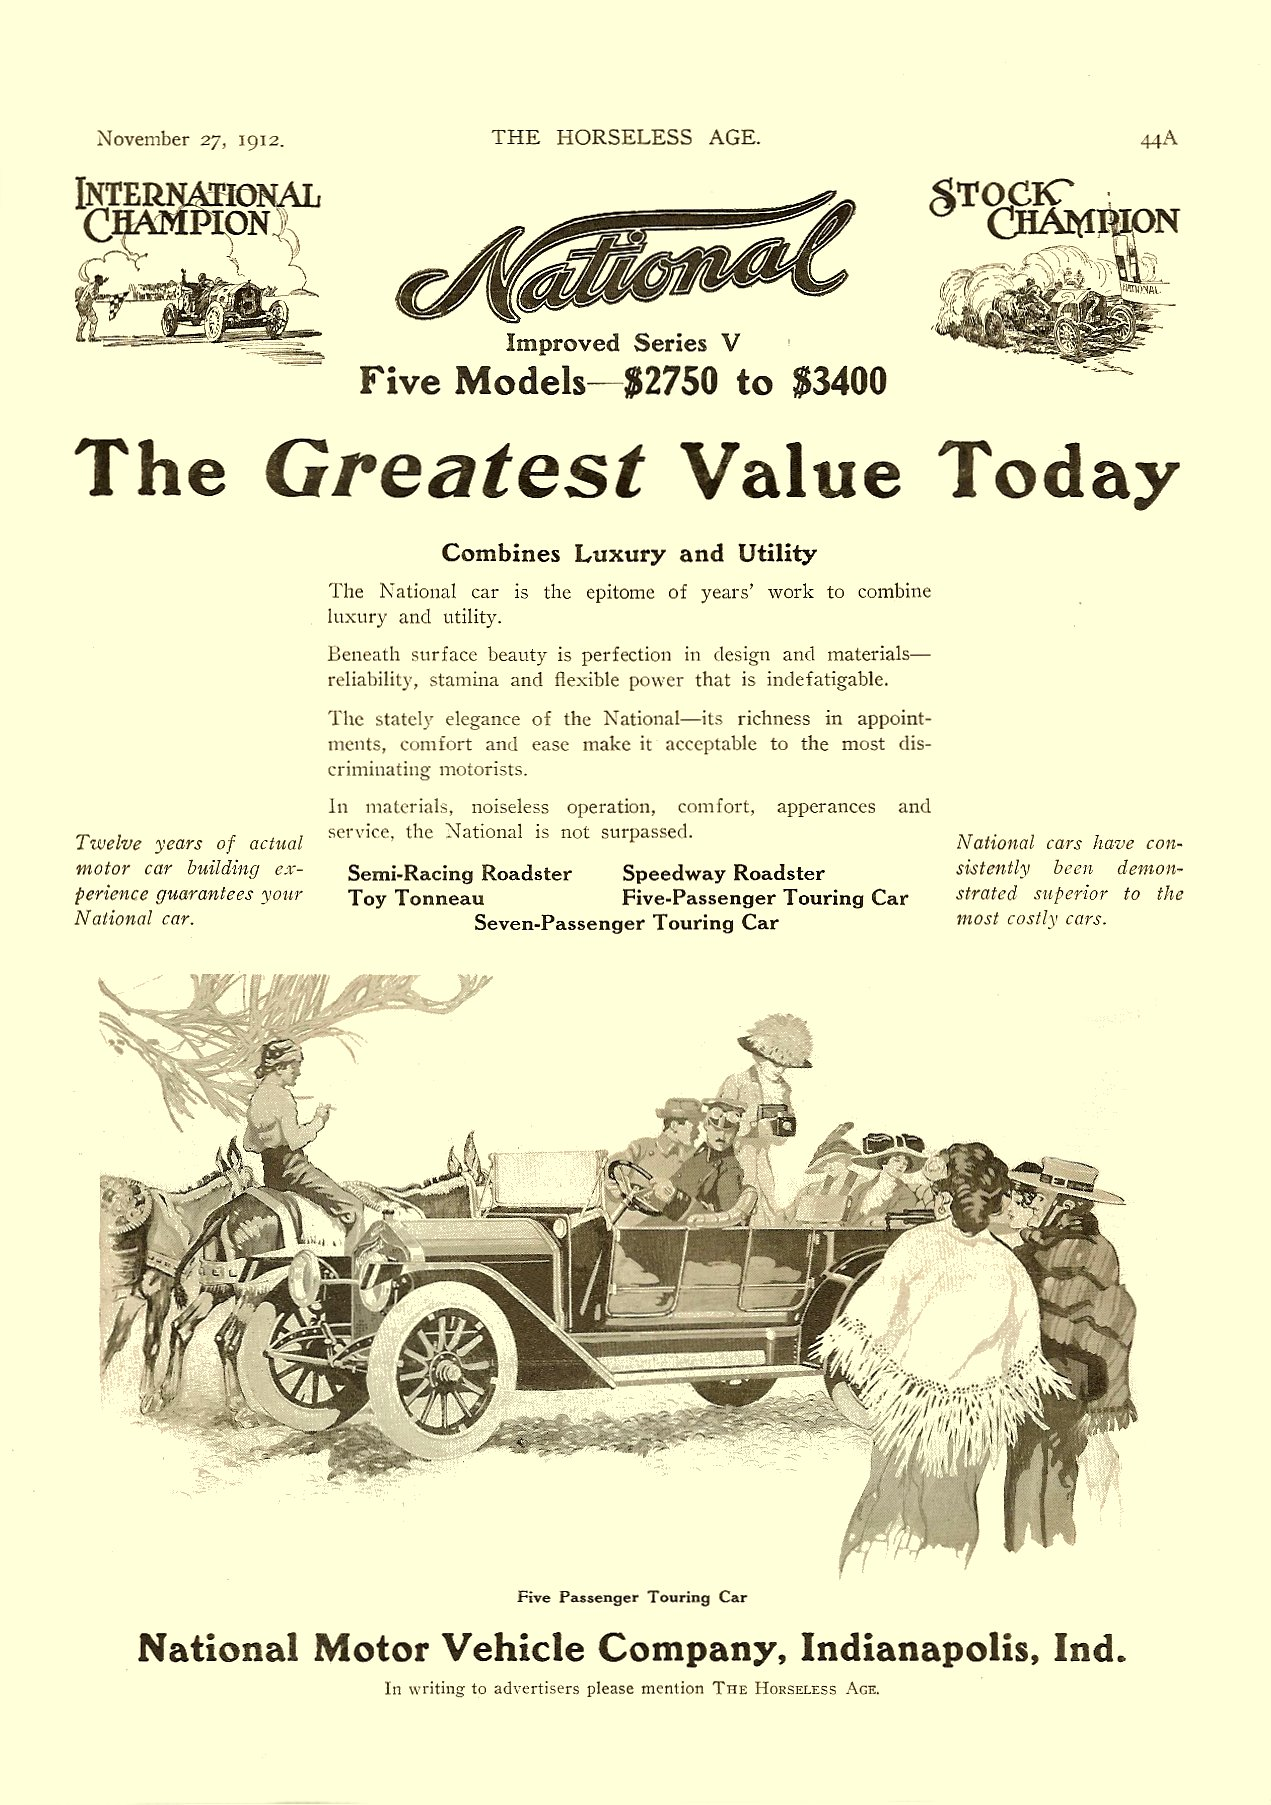 1913 11 27 NATIONAL Improved Series V Fives Models – $2750 to $3400 THE HORSELESS AGE Vol. 30, No. 22 November 27, 1912 9″x12″ page 44A